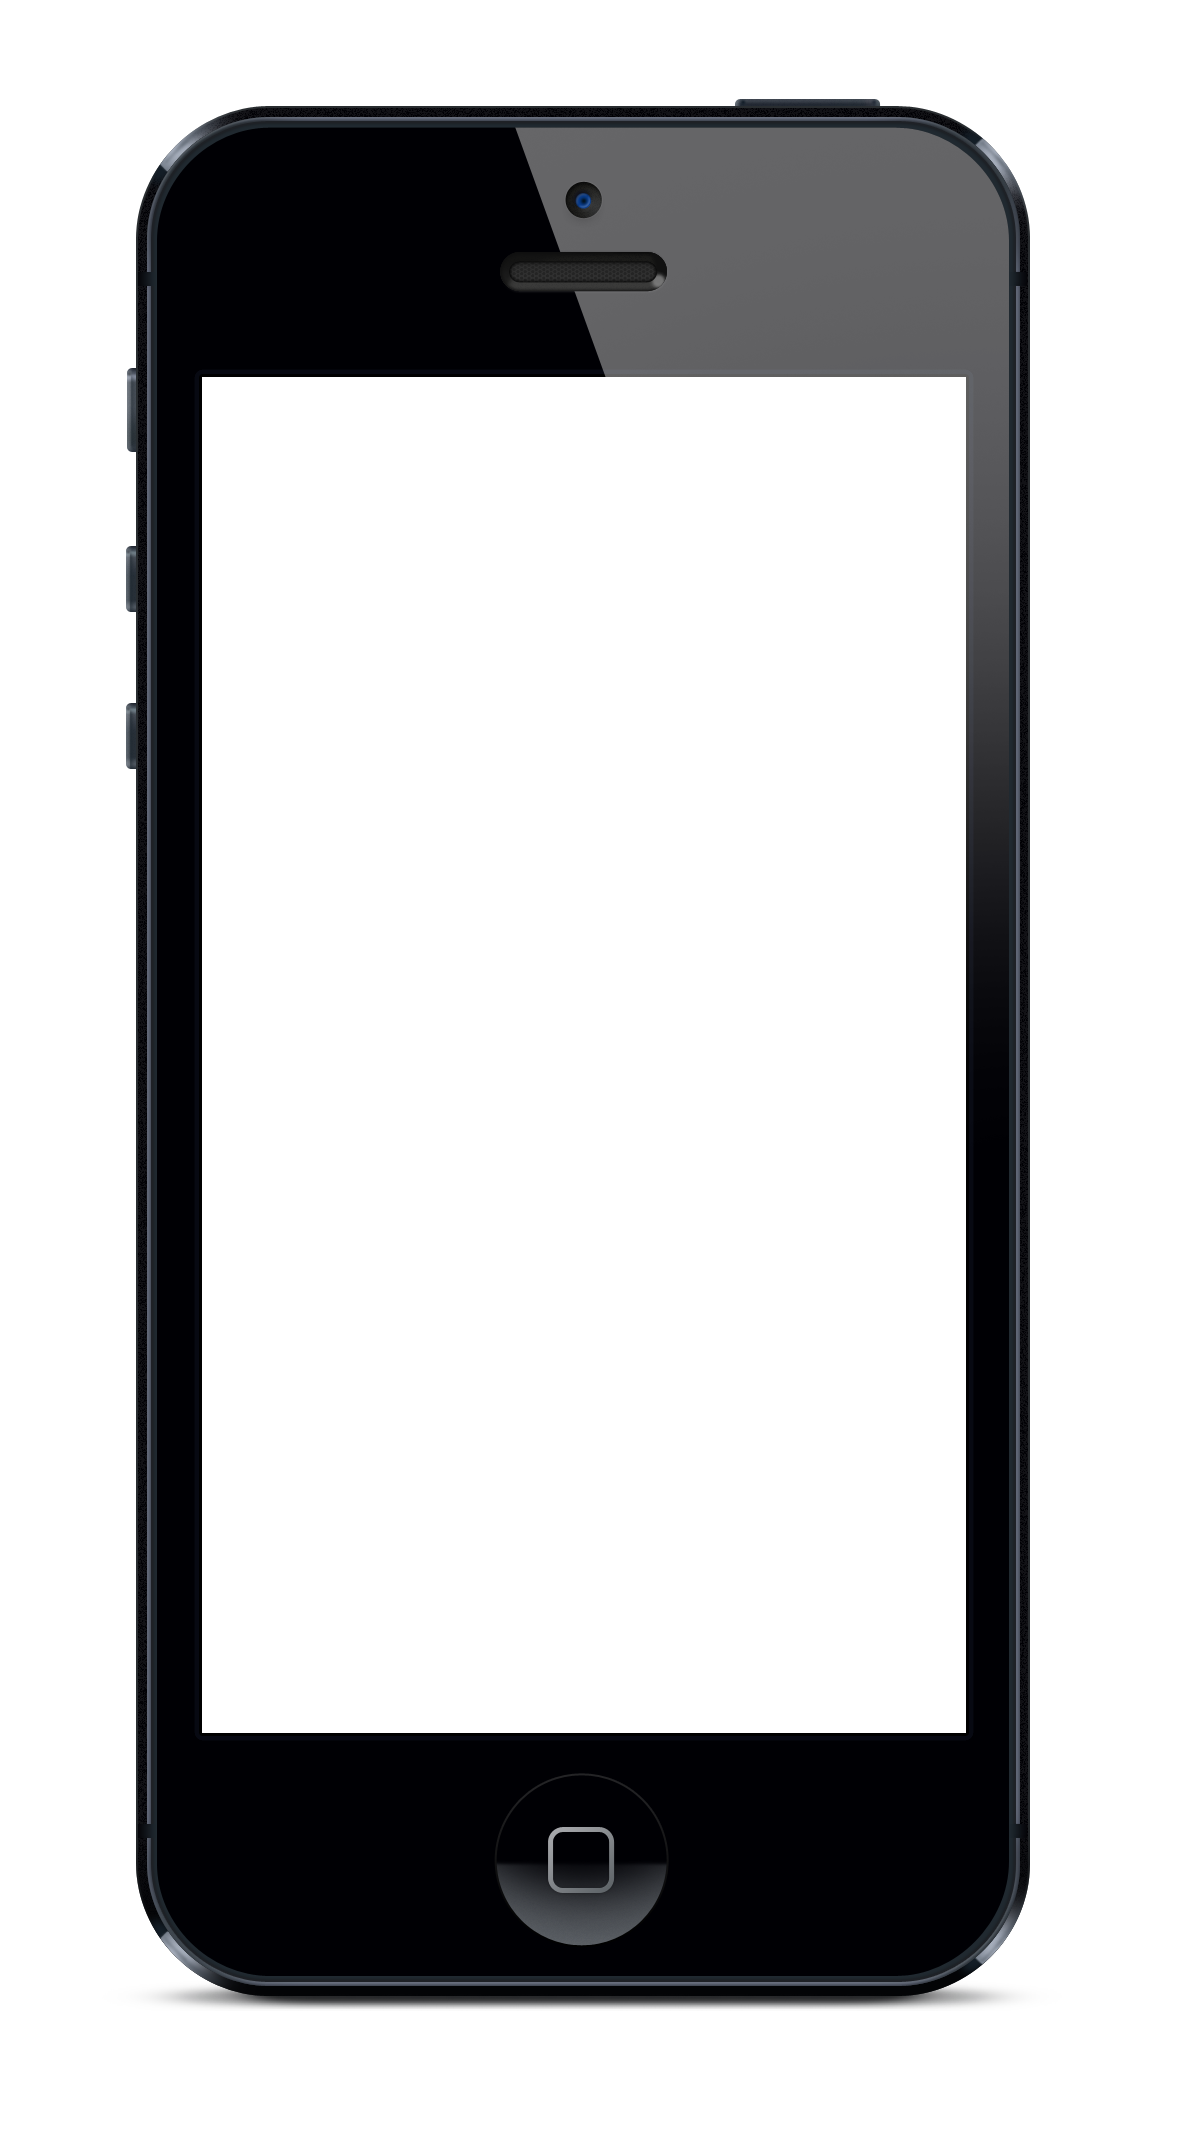 Apple Iphone Transparent PNG Image - Iphone PNG Png